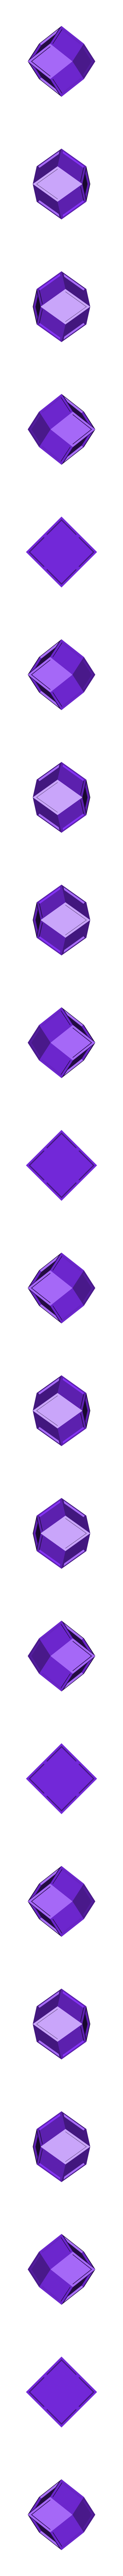 rhombic_dohecahedron_body.stl Download free STL file Cube Illusion (Rhombic Dodecahedron) • 3D printer template, MosaicManufacturing